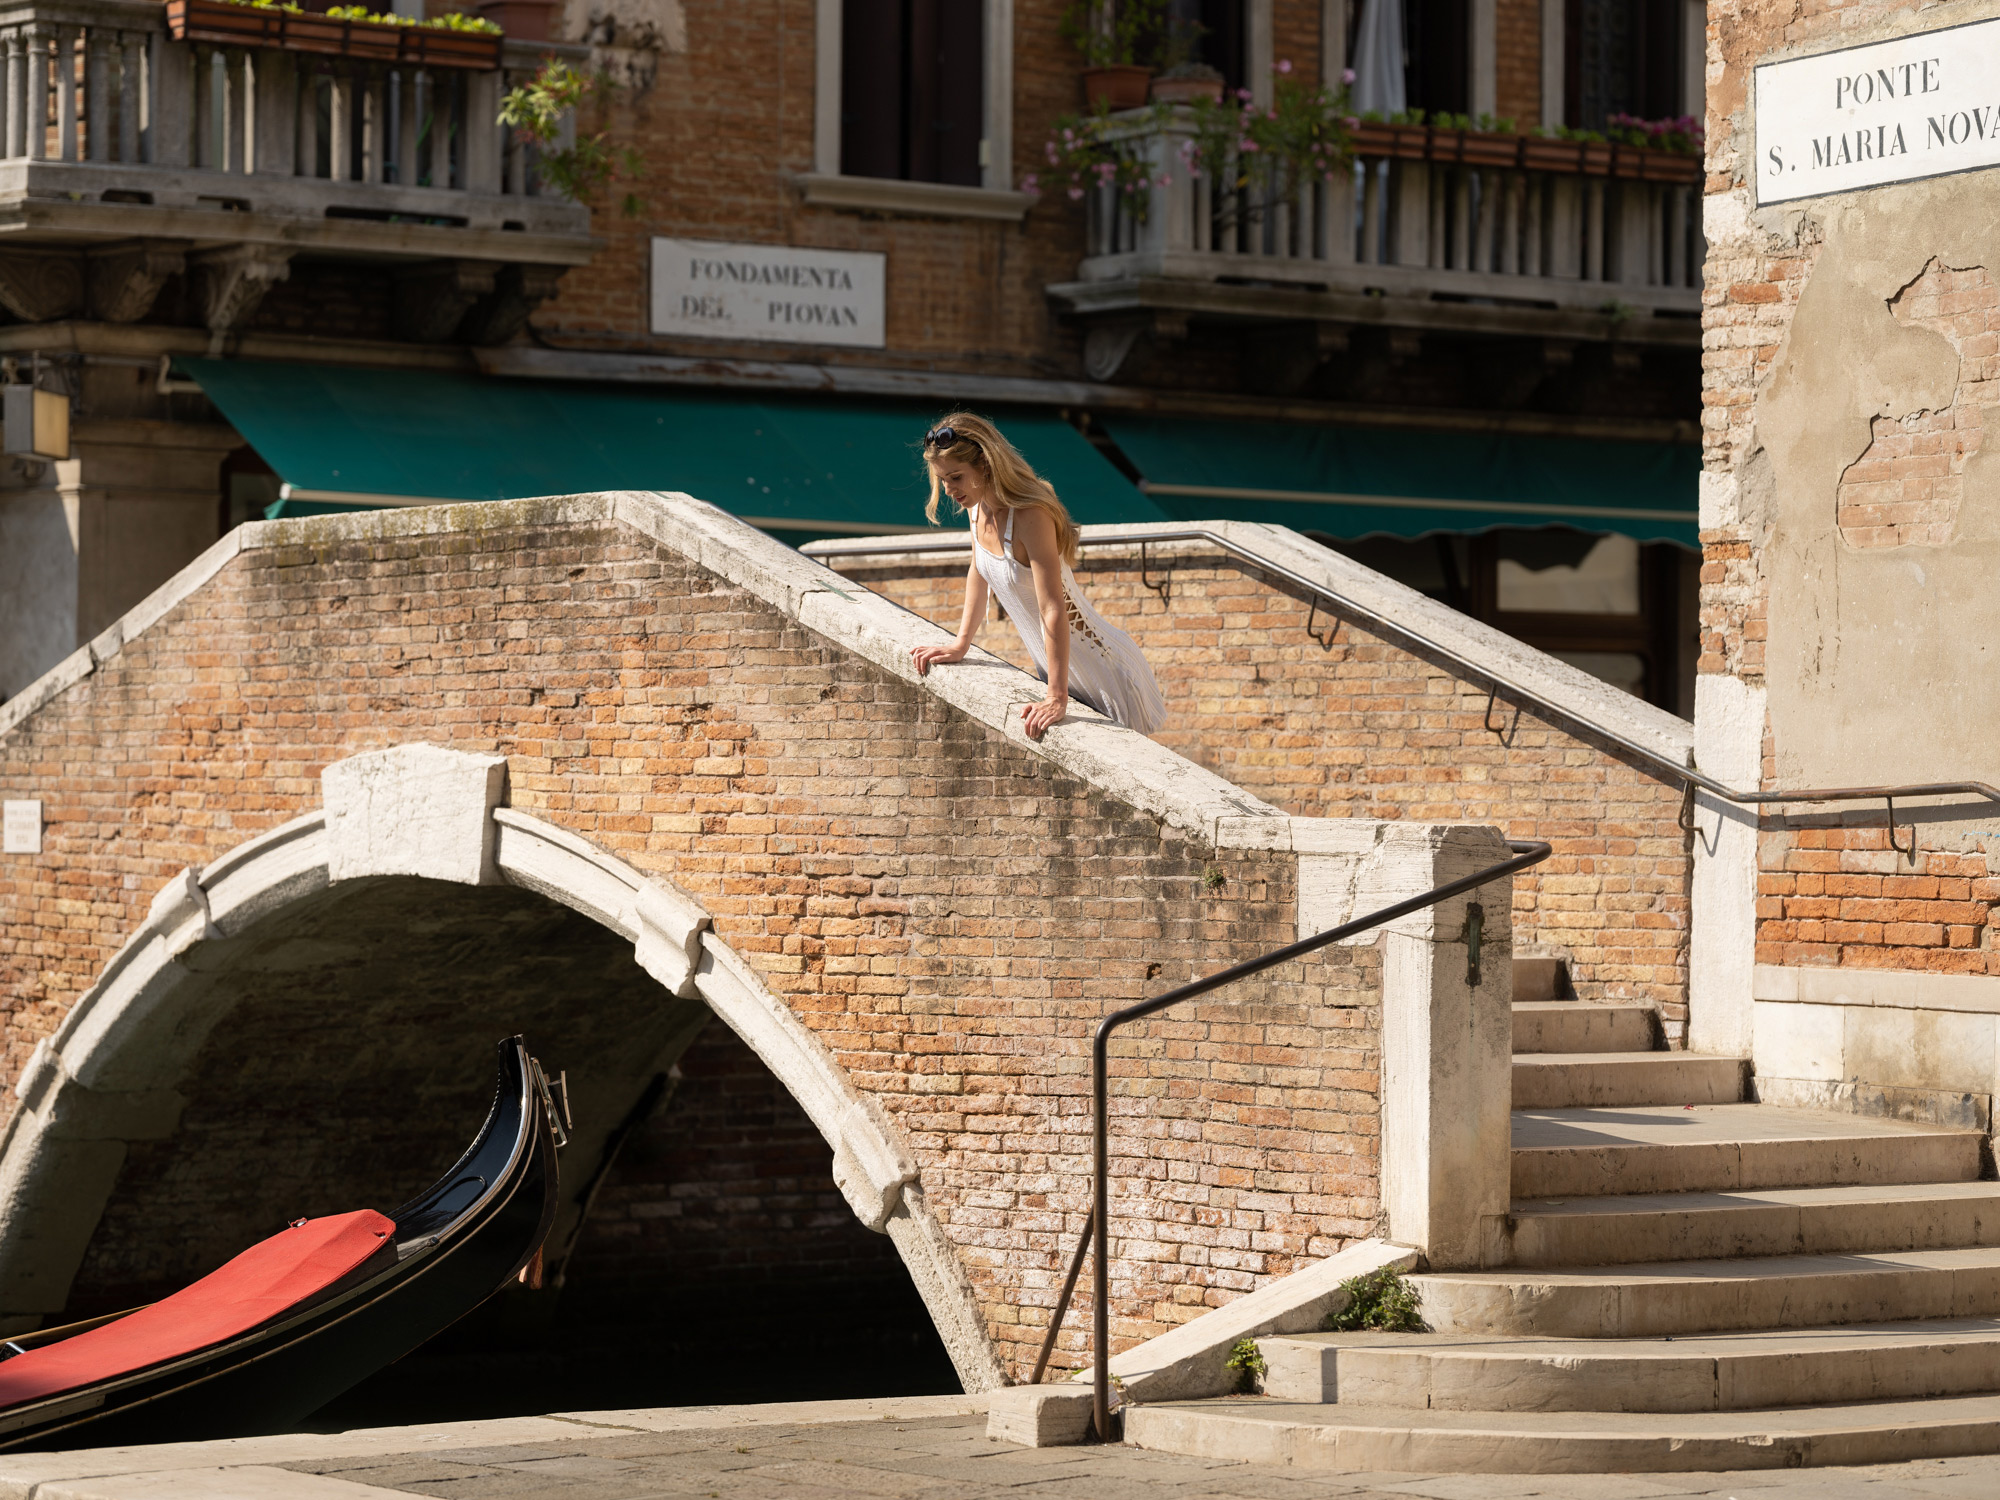 48 hours in Venice with the Fujifilm GFX100 ~ High res samples